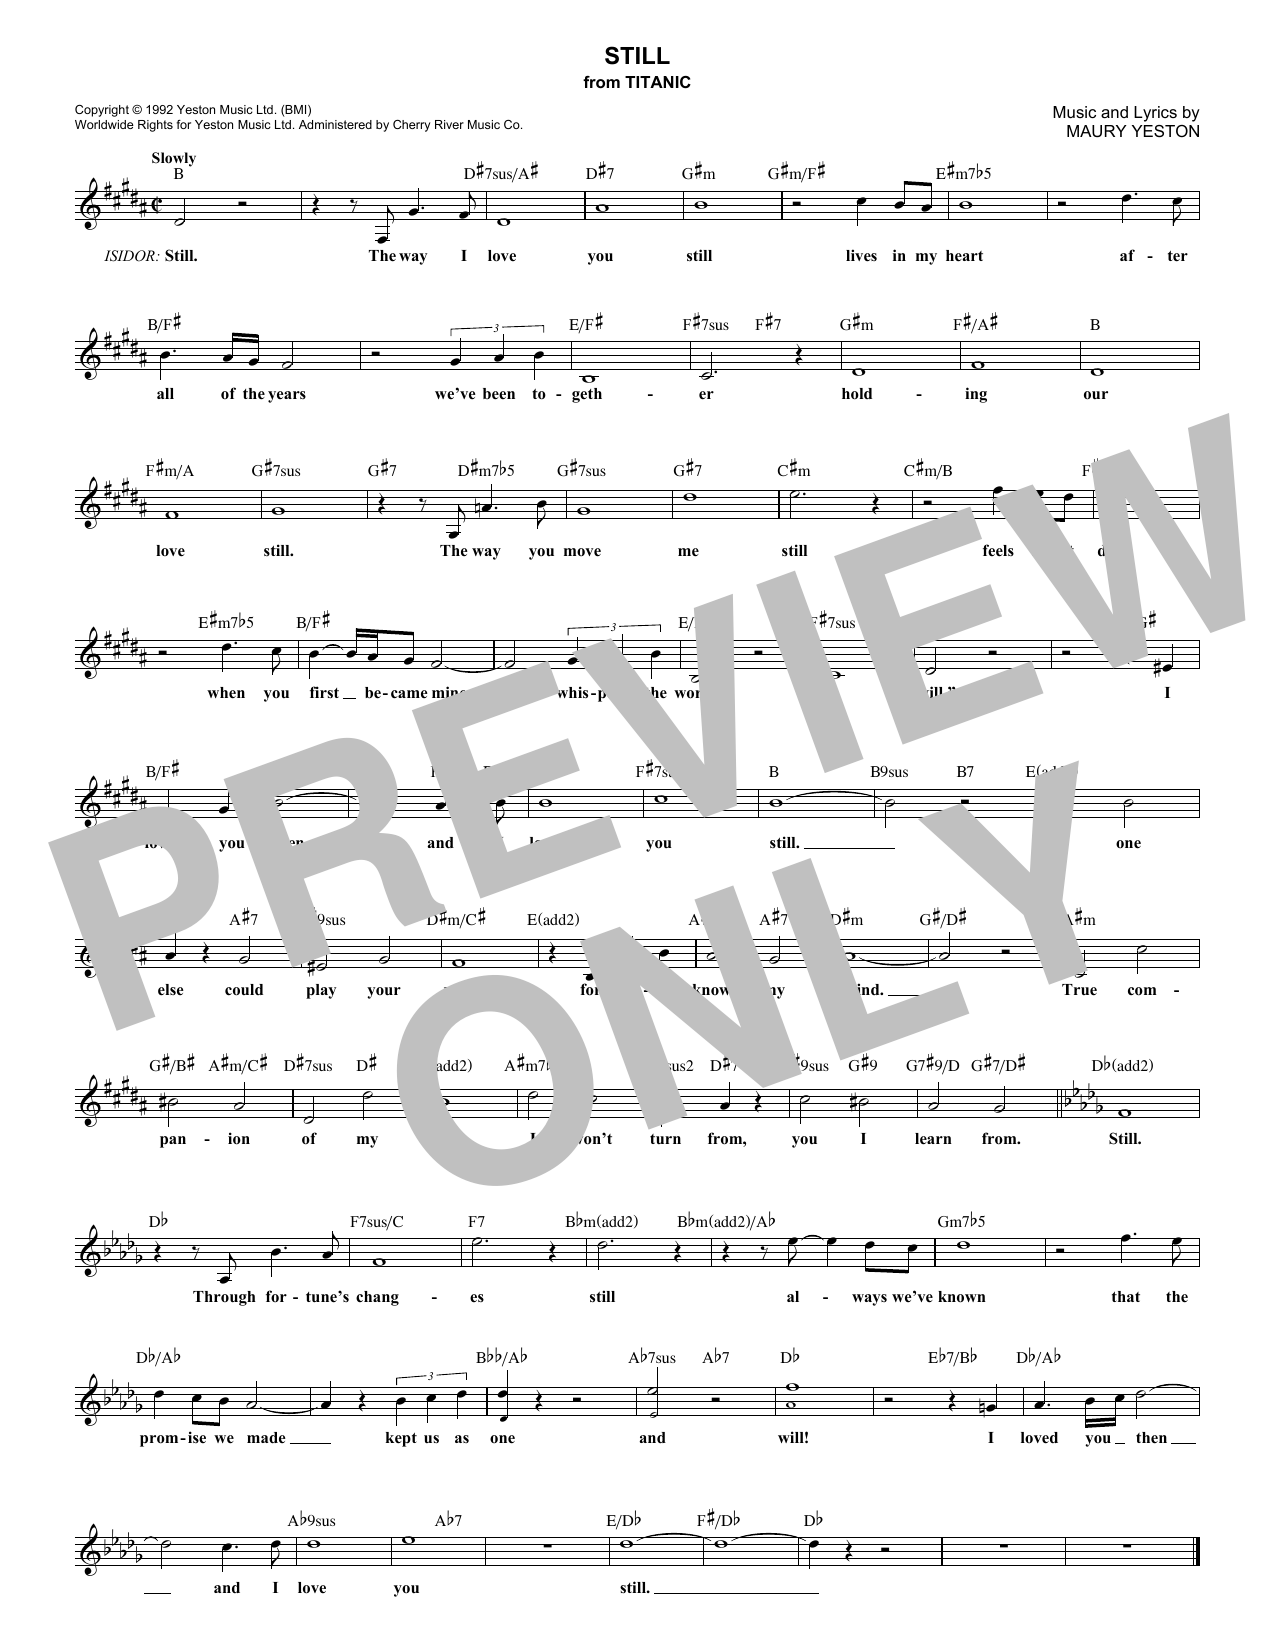 Still chords by maury yeston melody line lyrics chords 181806 maury yeston still melody line lyrics chords hexwebz Image collections